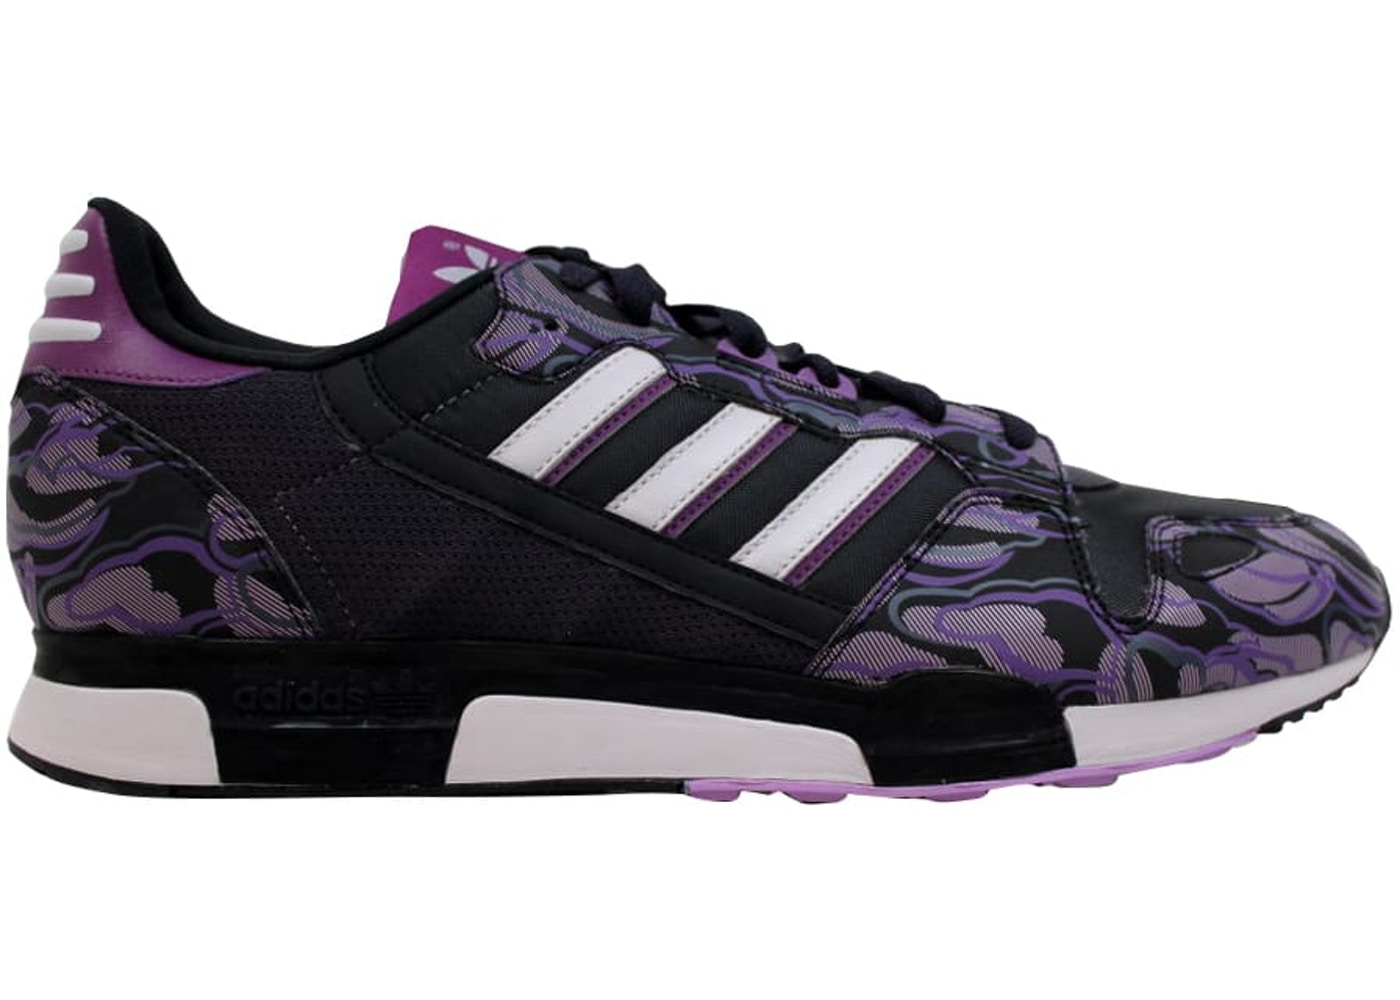 new concept f9c27 a4006 adidas ZX 800 Black/Purple-White - 661271